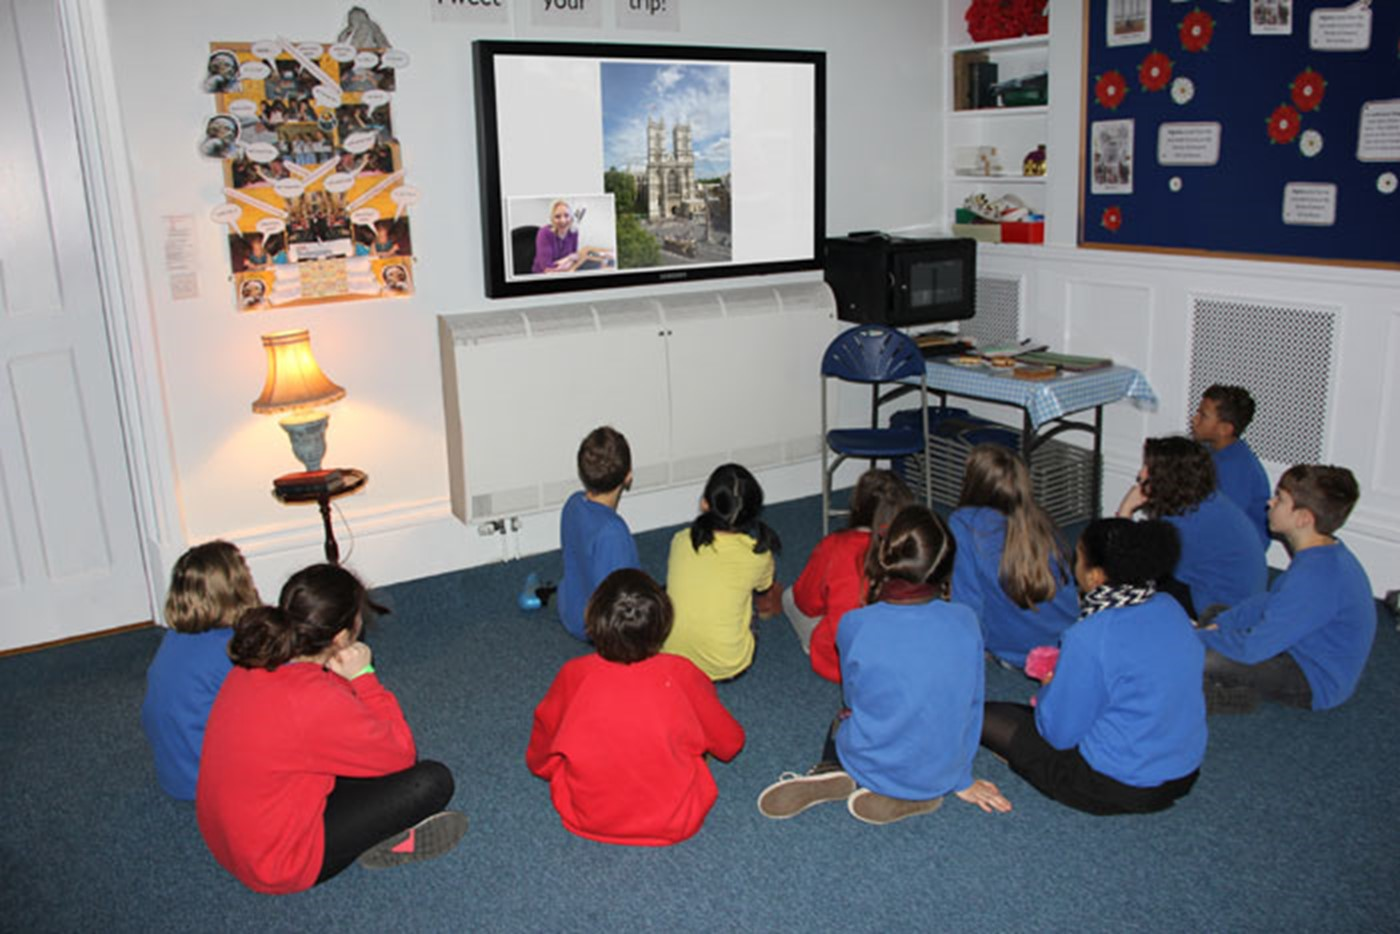 Westminster-Abbey-Video-Conferencing.jpg